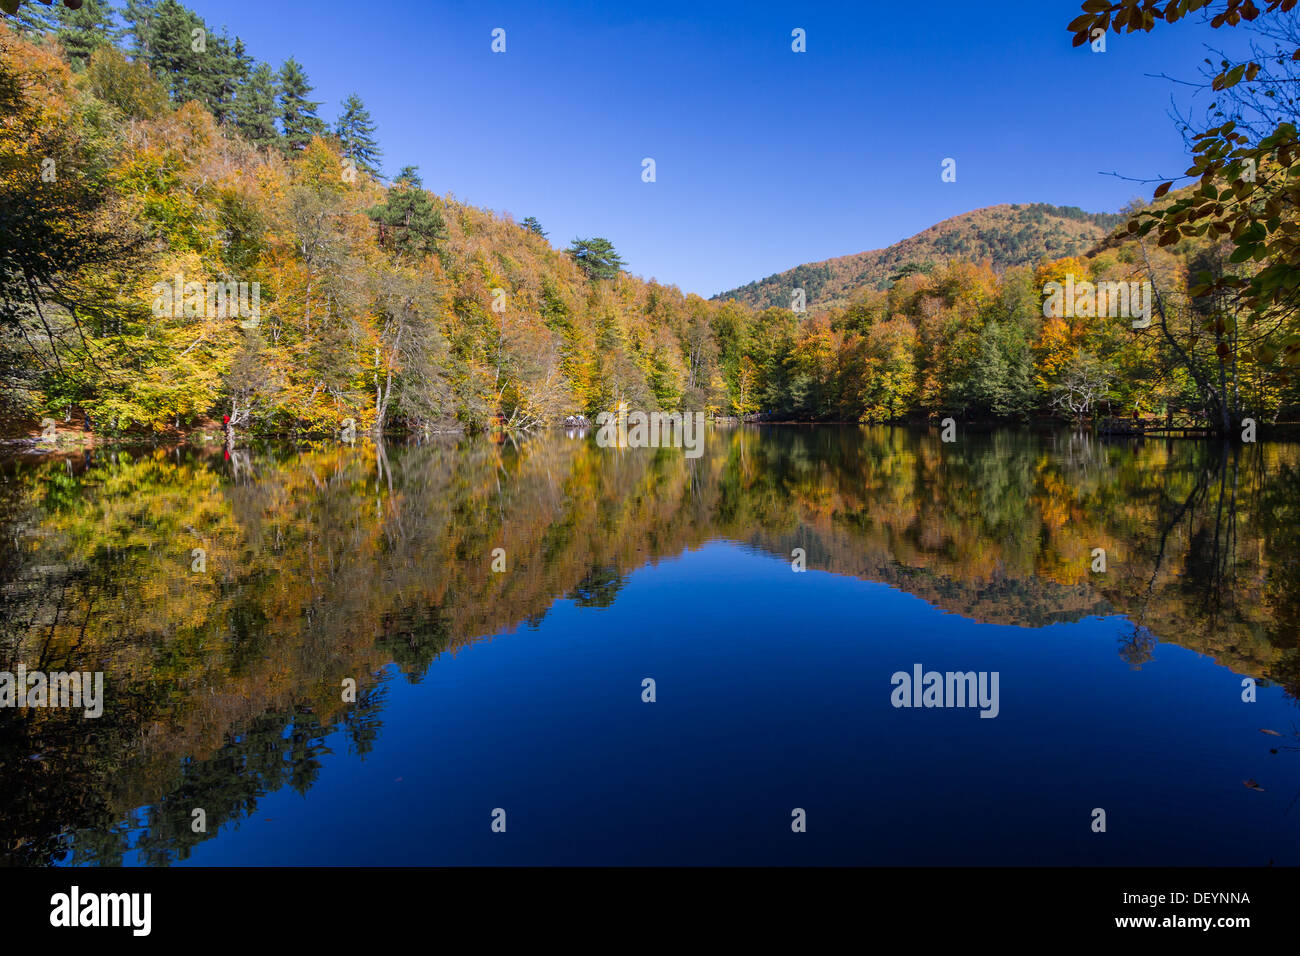 Bolu Turkey Stockfotos & Bolu Turkey Bilder - Alamy